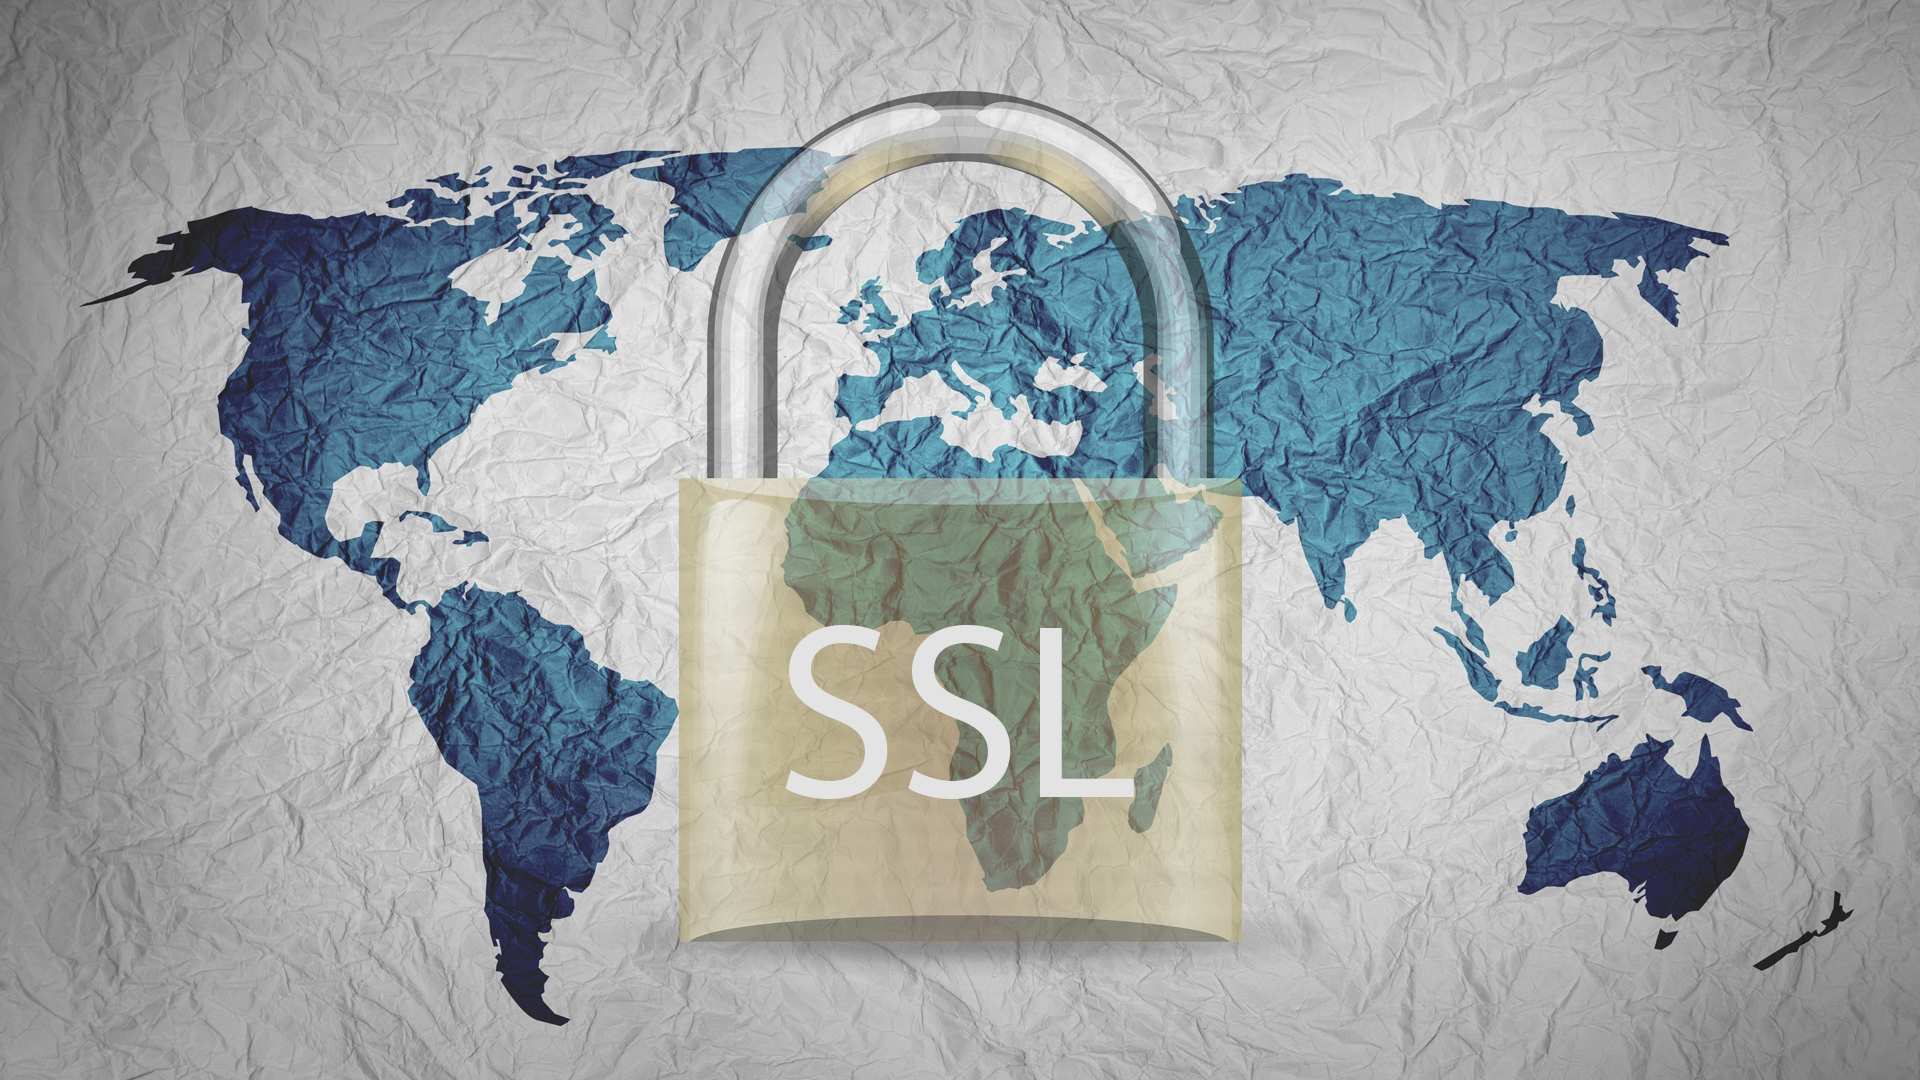 SSL - Data security of eSignatures